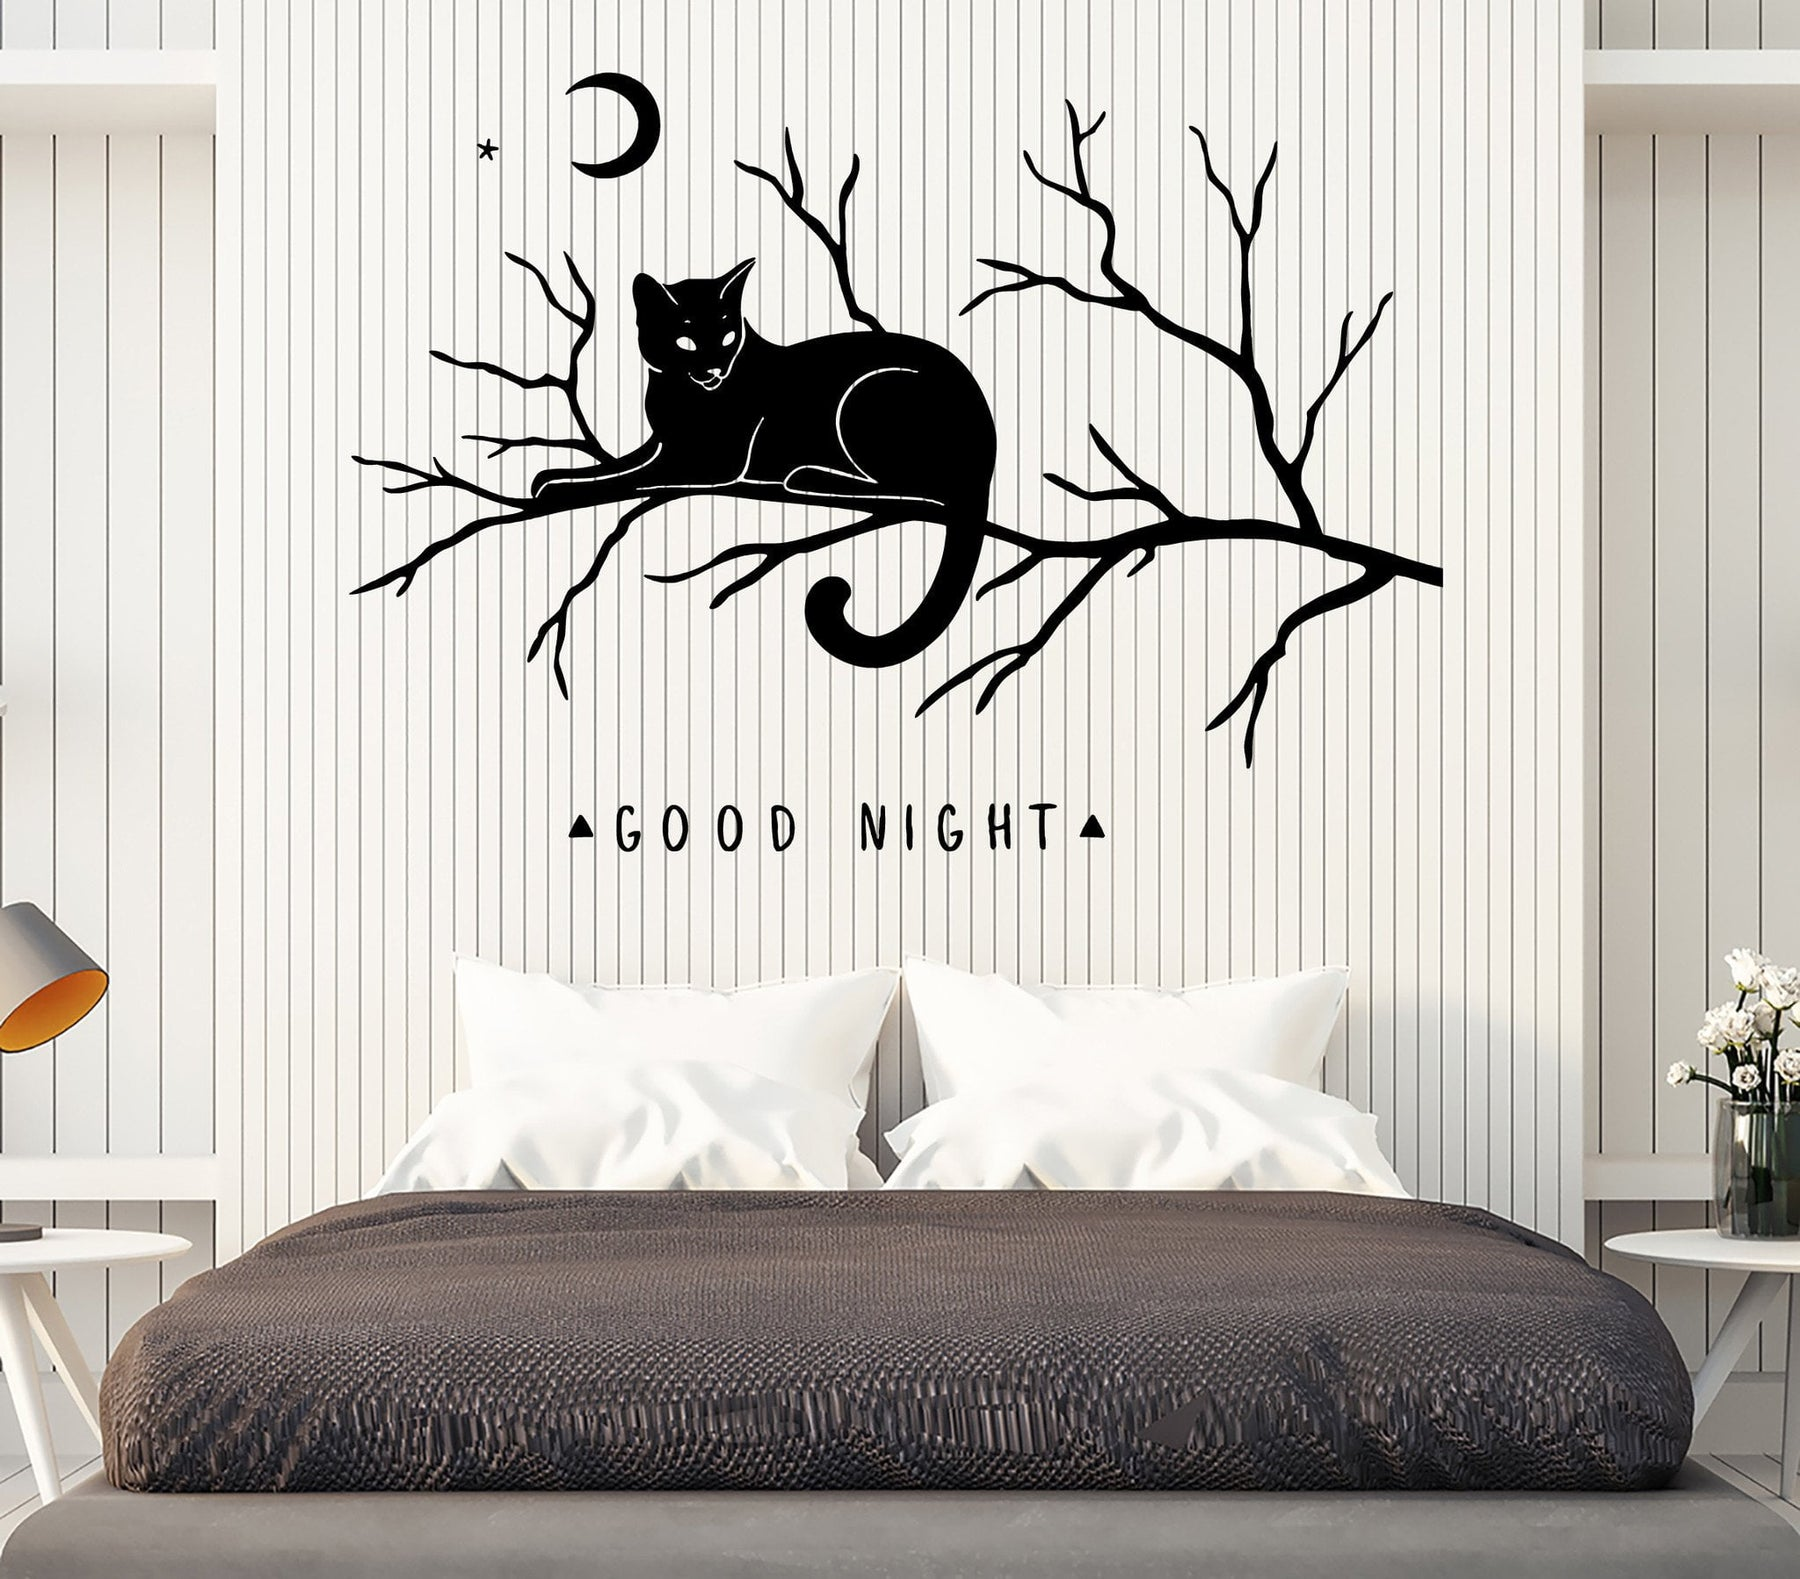 Wall Vinyl Decal Words Good Night Cat On A Branch Moon Bedroom Decor U Wallstickers4you